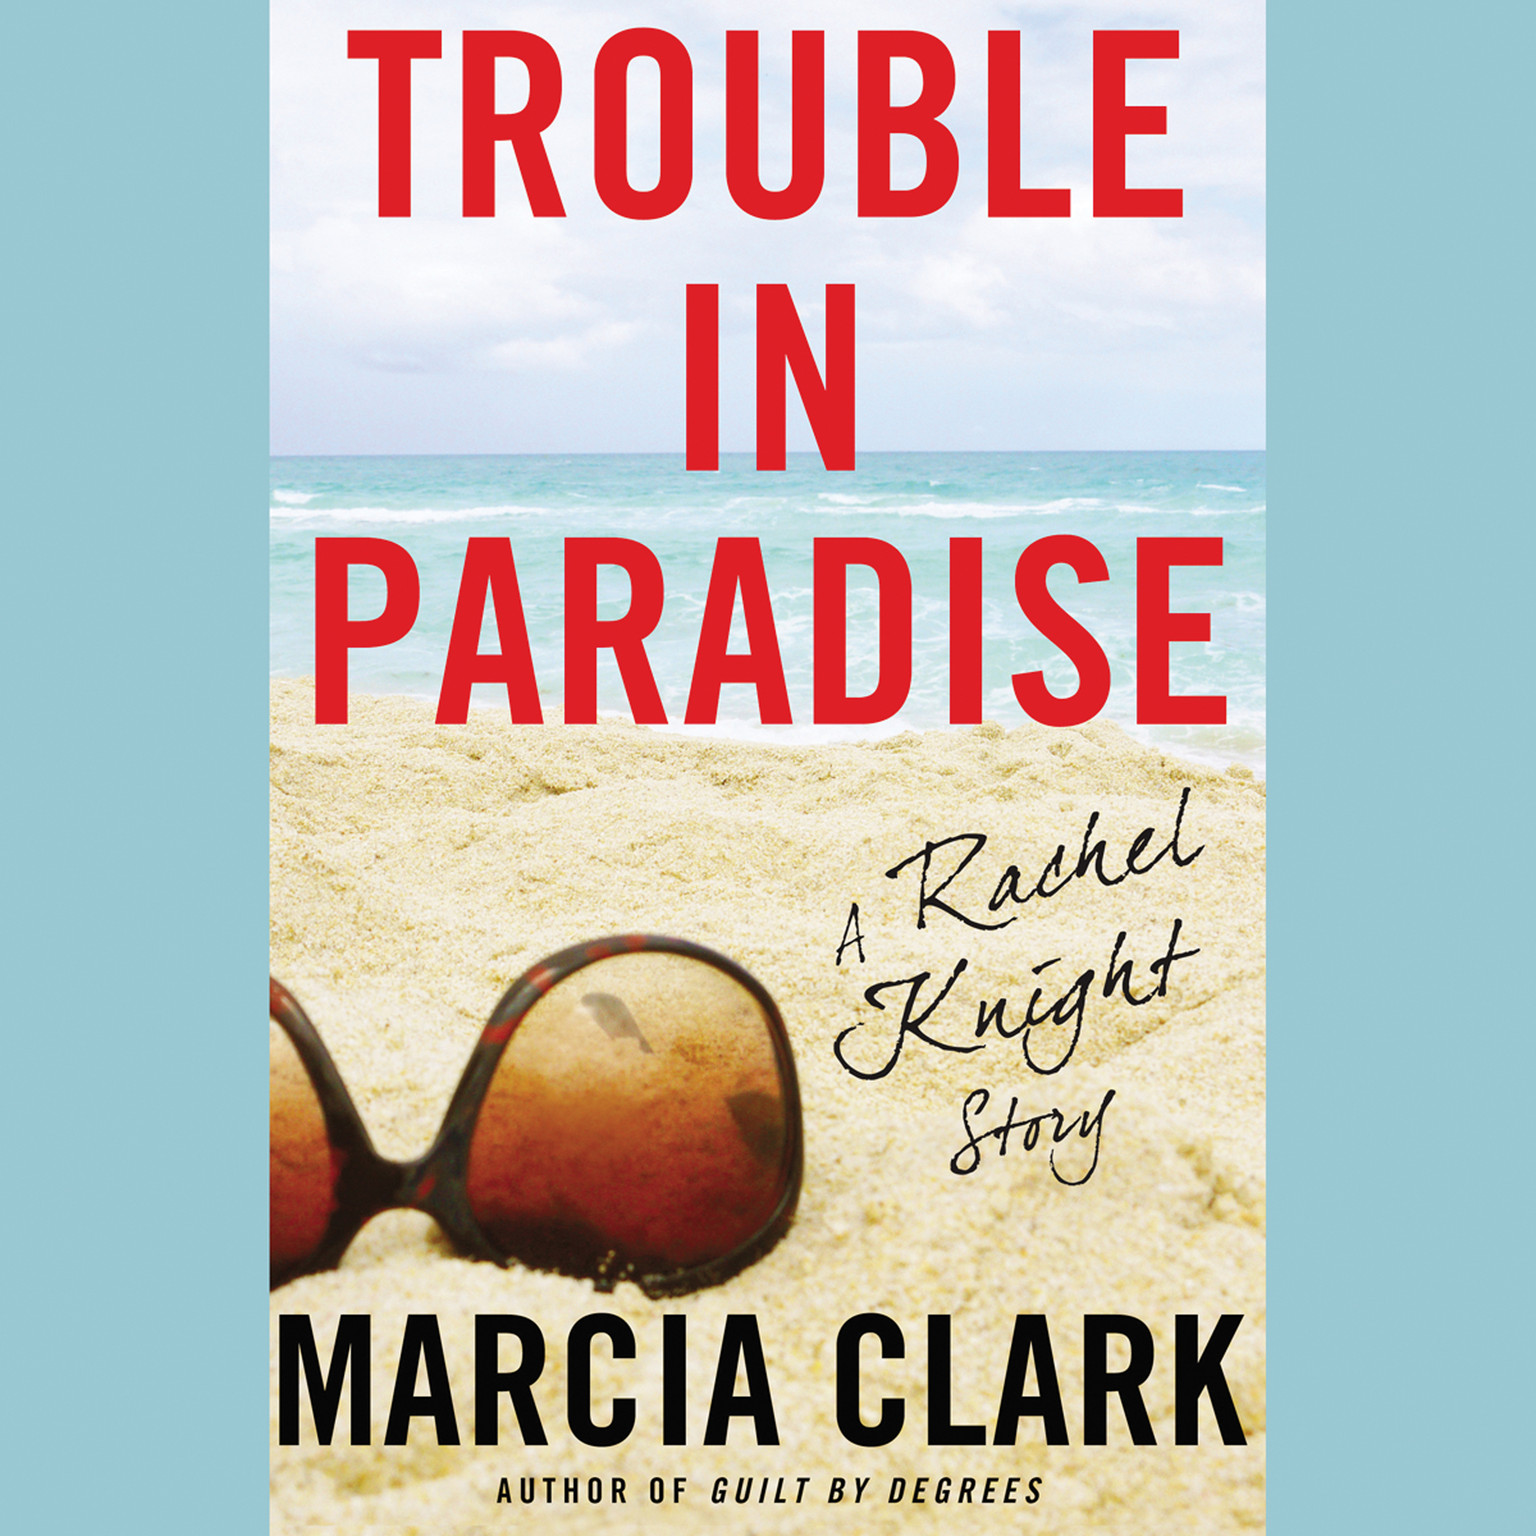 Printable Trouble in Paradise: A Rachel Knight Story Audiobook Cover Art